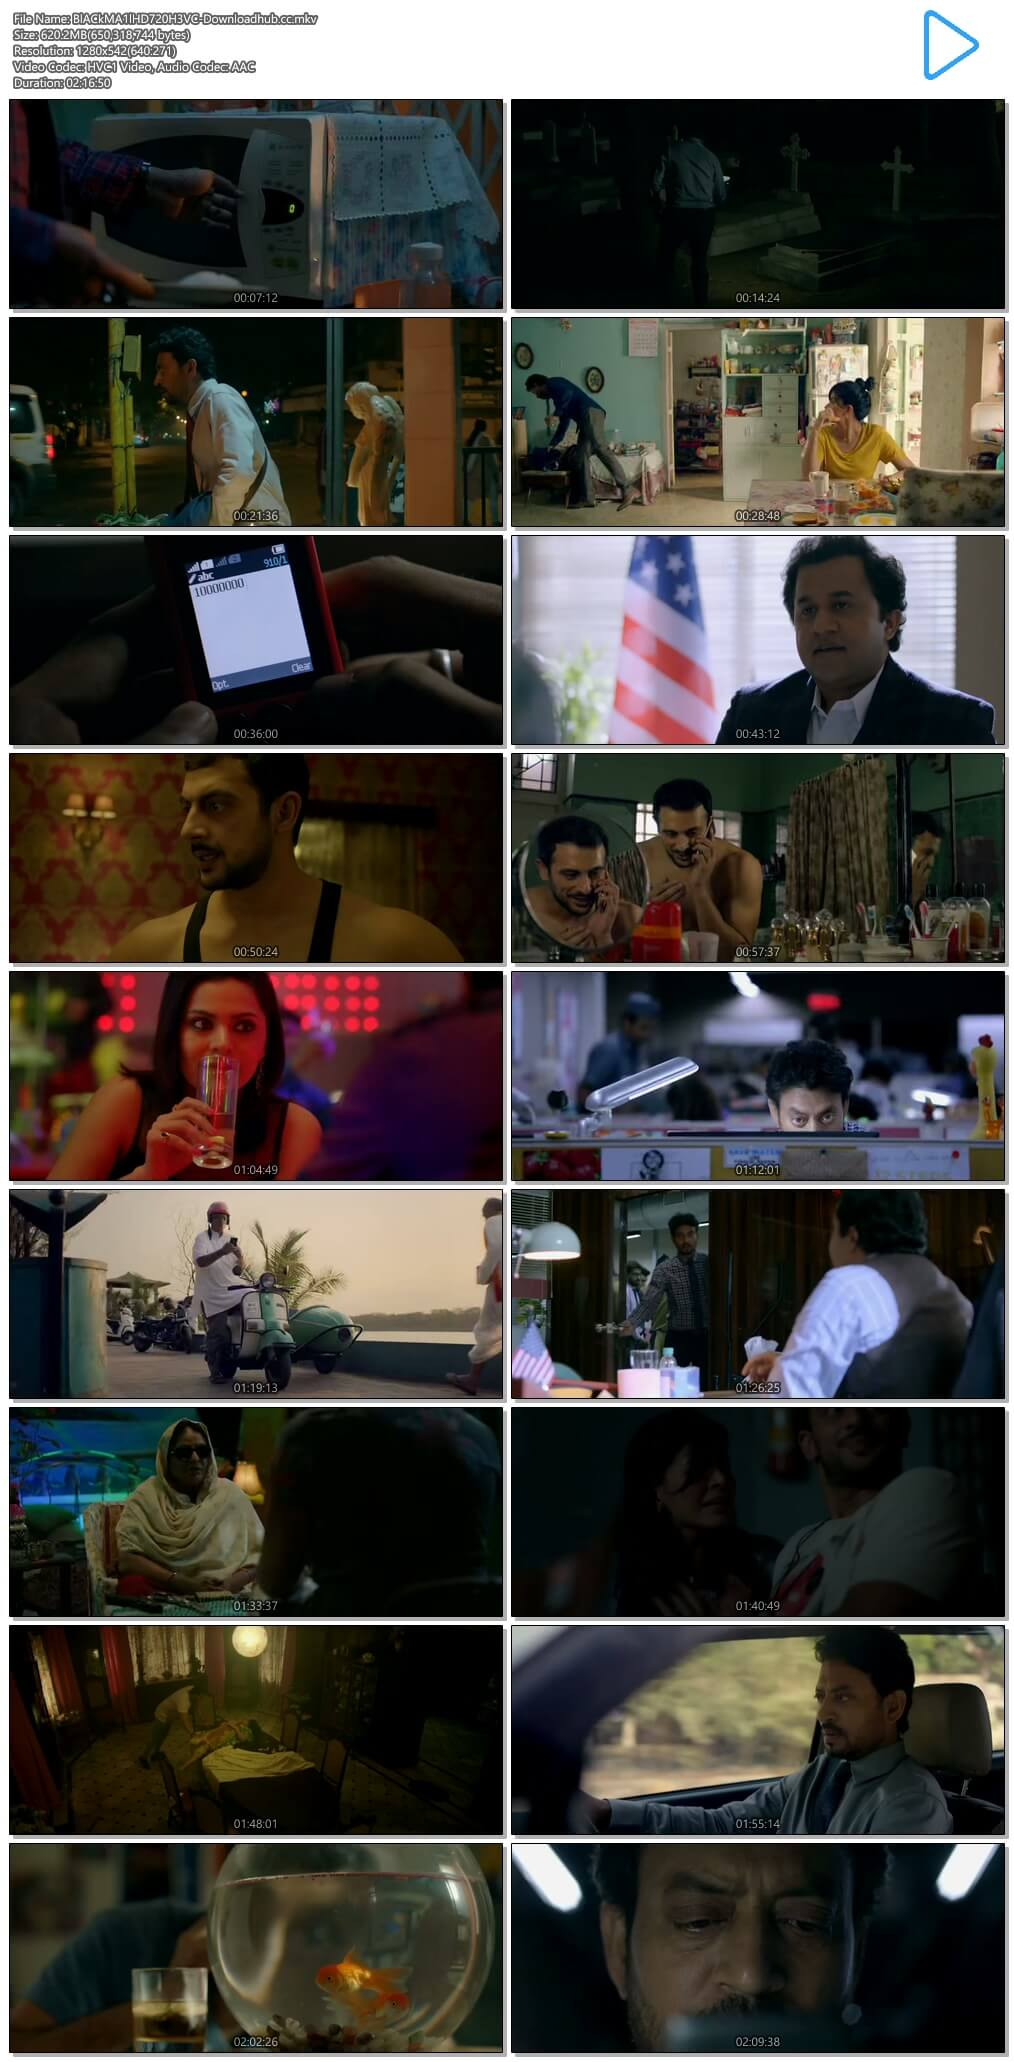 Blackmail 2018 Hindi 720p HEVC HDRip